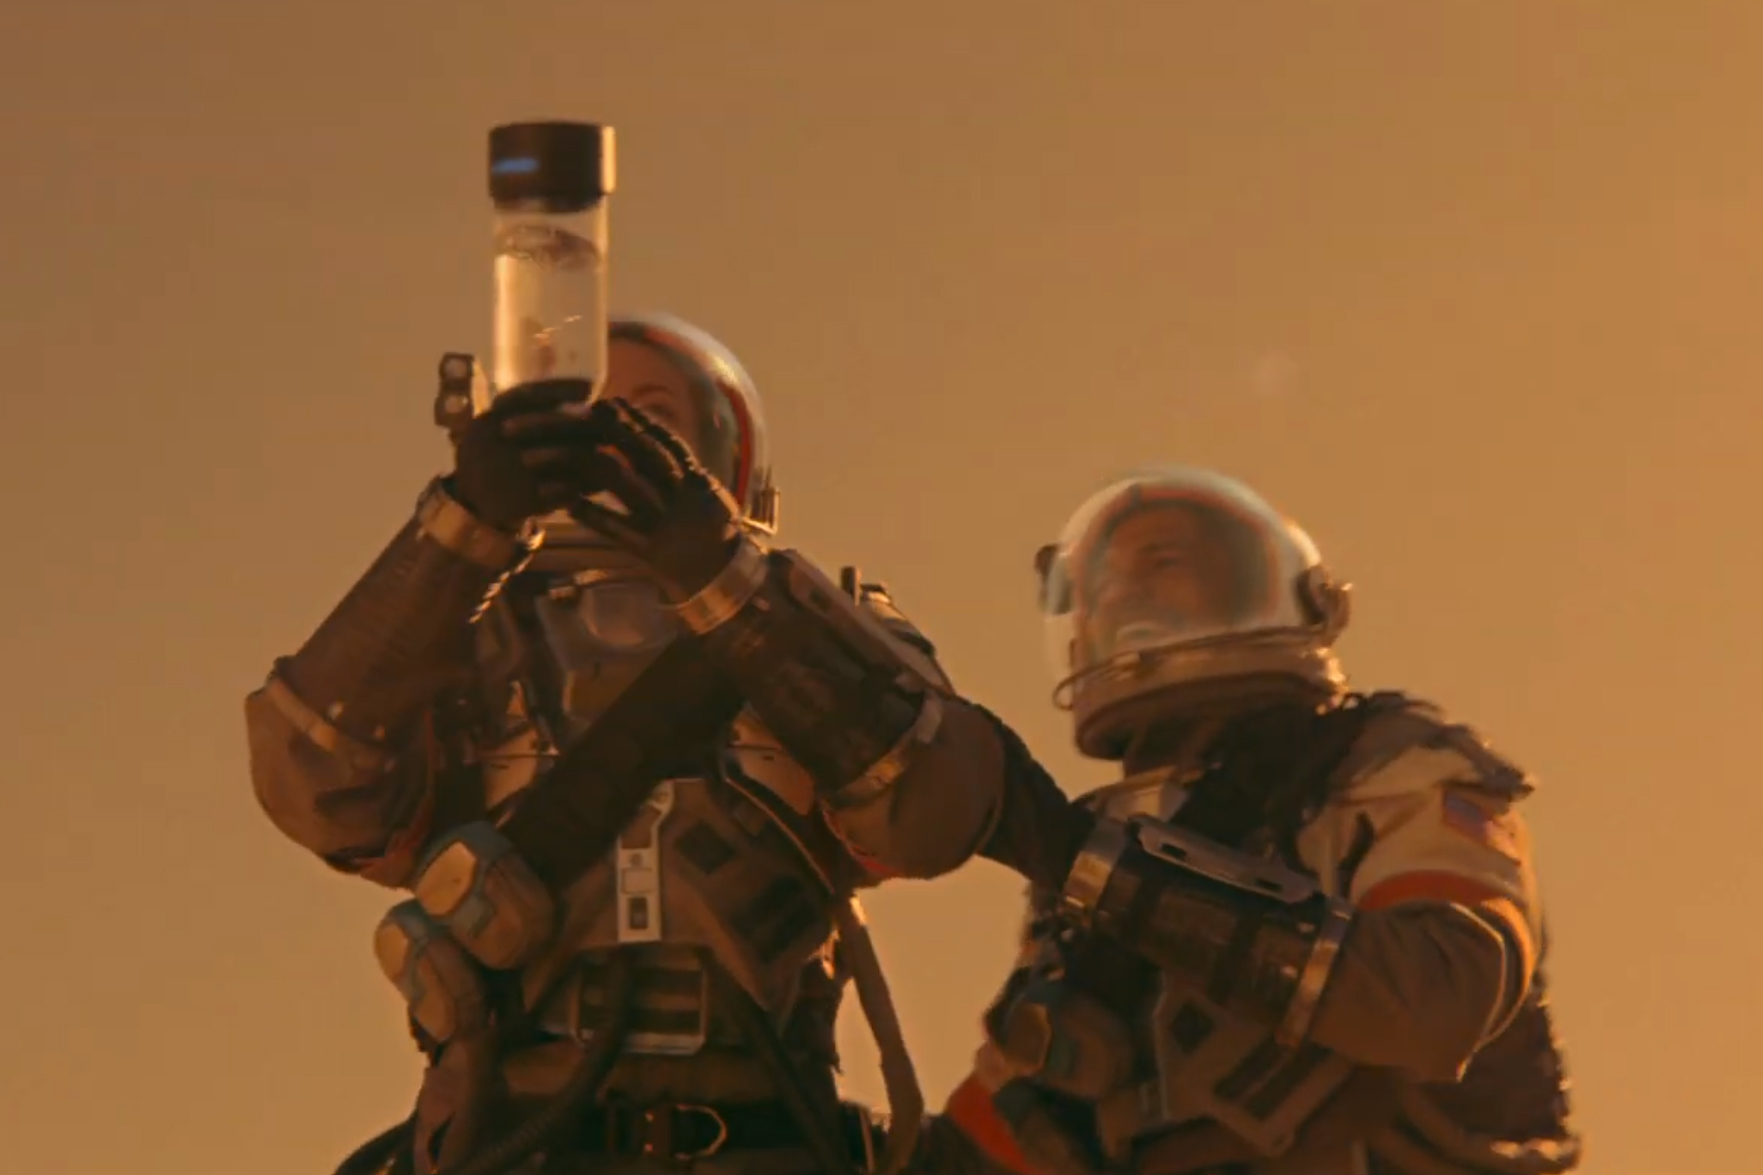 SodaStream's space-themed blockbuster is a Super Bowl debut under parent PepsiCo